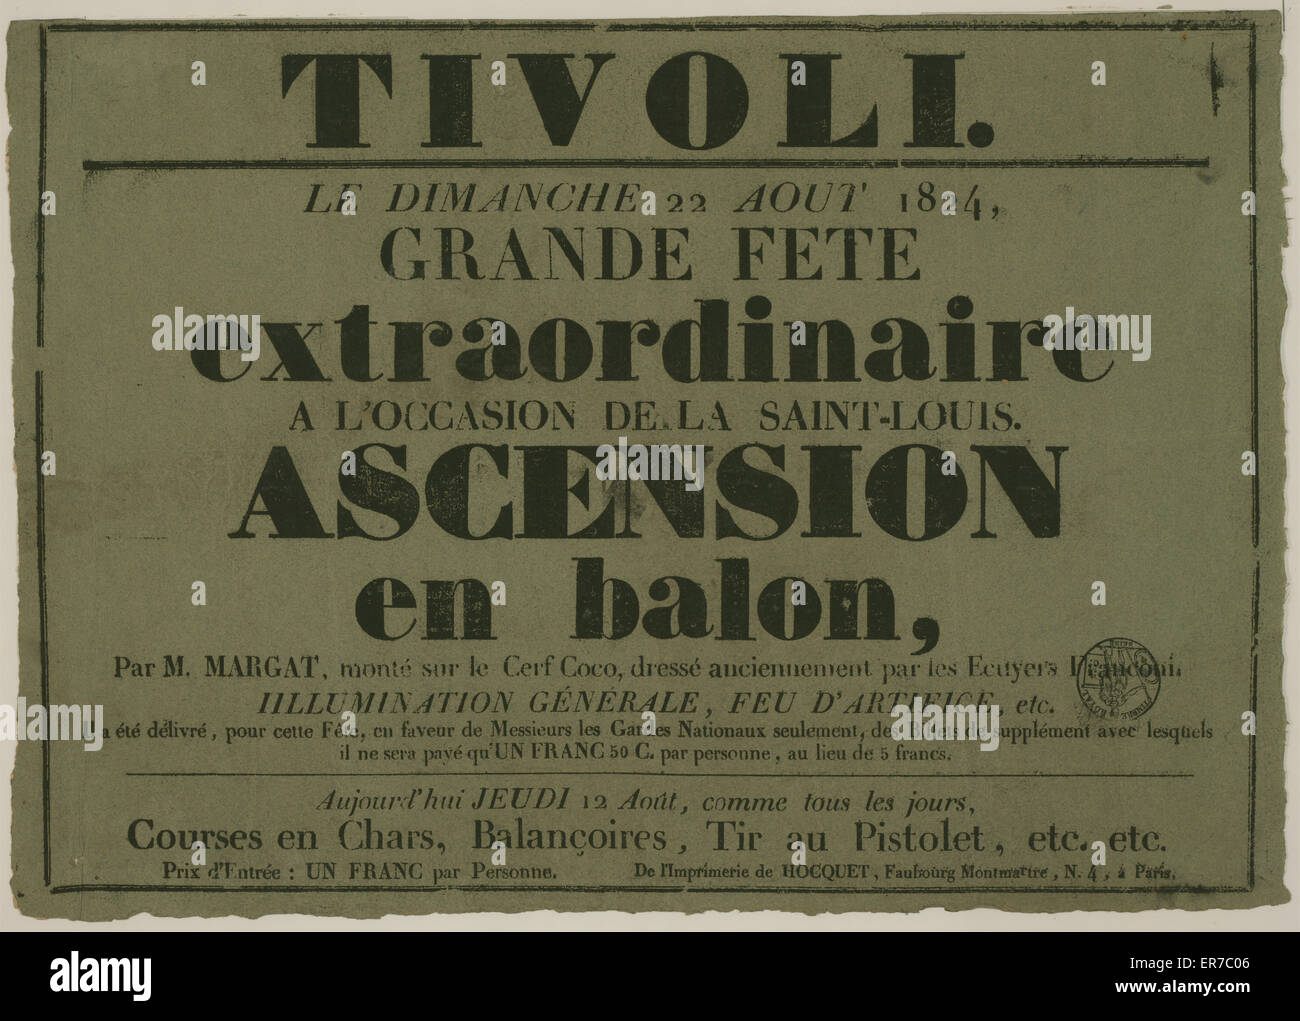 Tivoli. Le dimanche 22 aout, 1824, grand fete extraordinaire a l'occasion de la Saint-Louis. Ascension en balon, - Stock Image